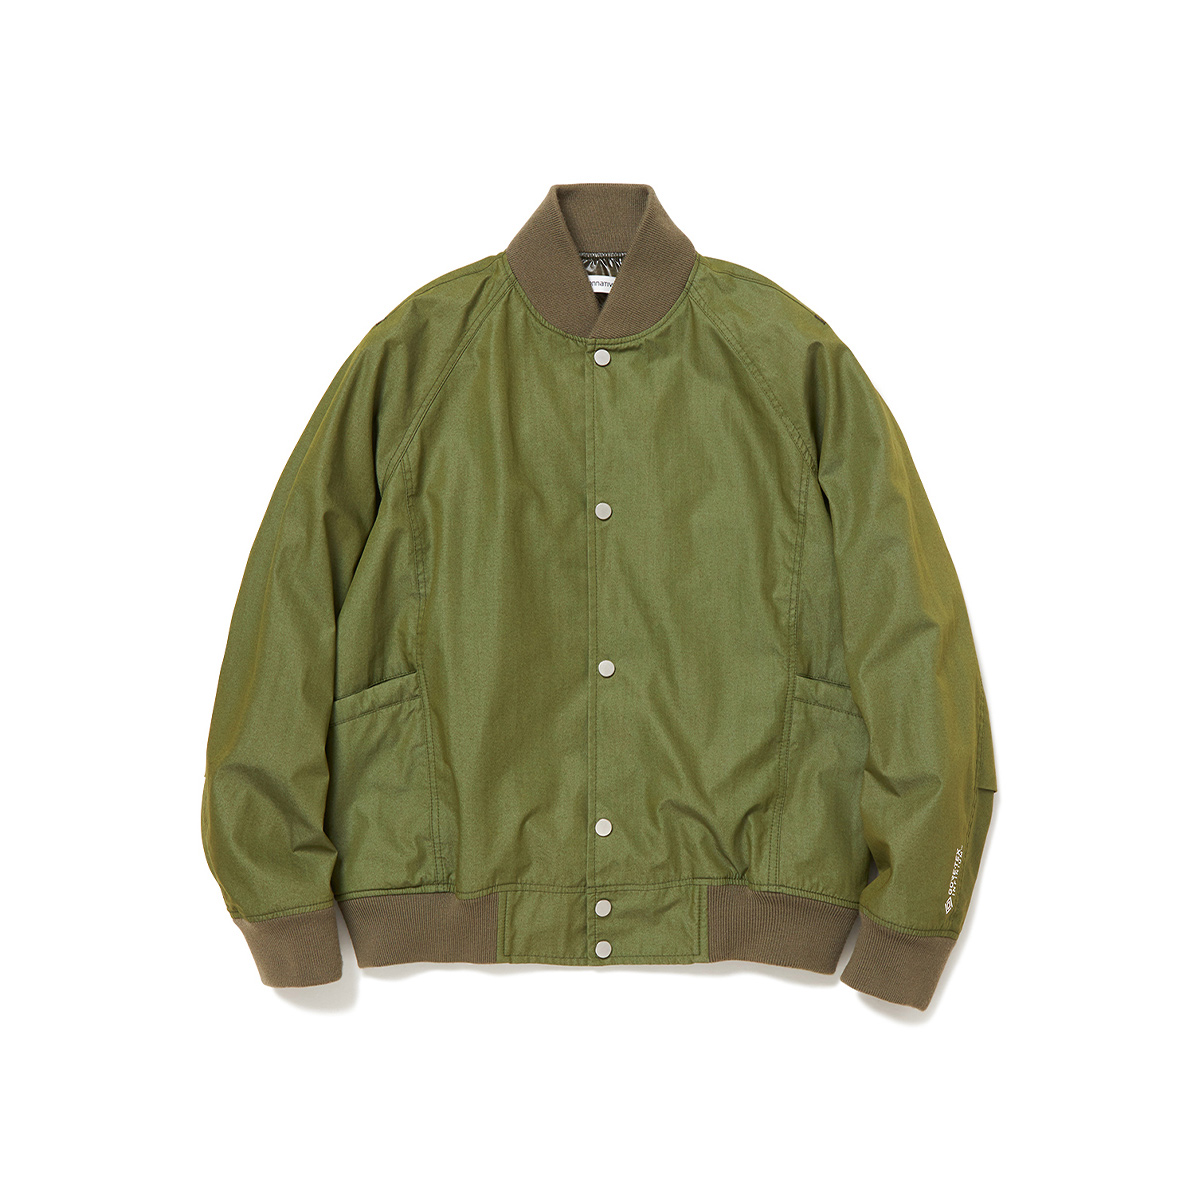 nonnative / EDUCATOR BLOUSON C/N TUSSAH WITH GORE-TEX INFINIUM™ (Olive)